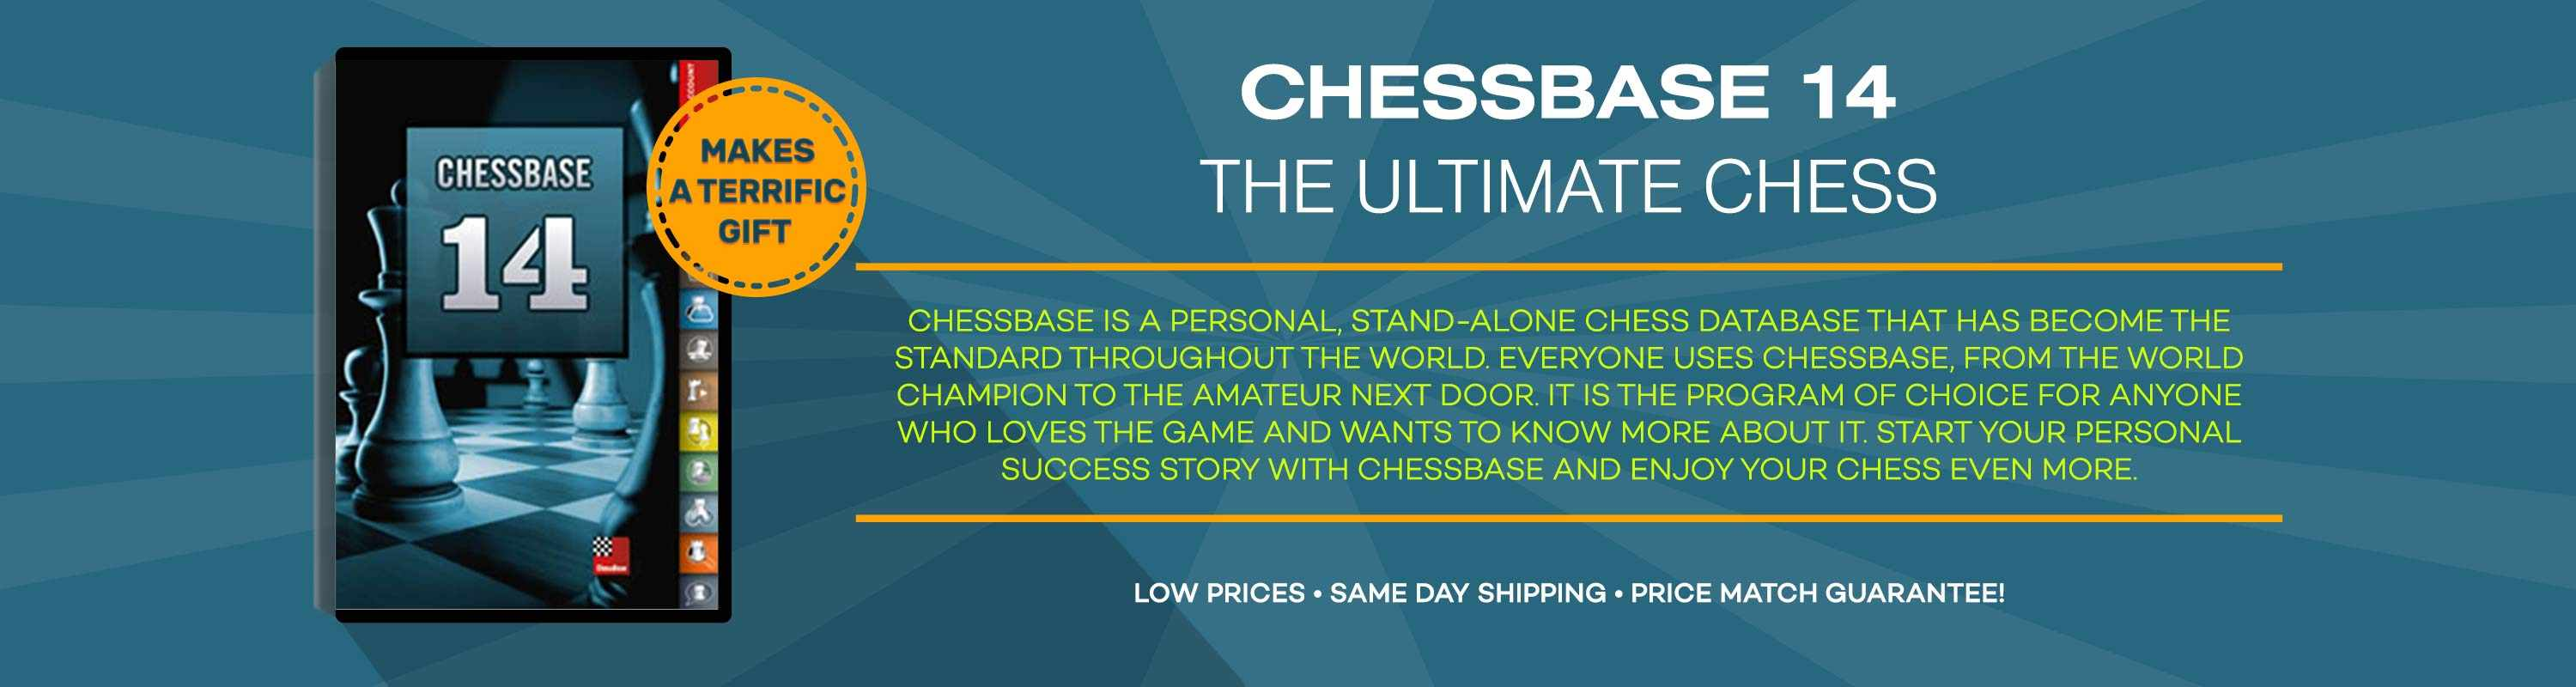 Give the gift of Chessbase 14 This Holiday Season!